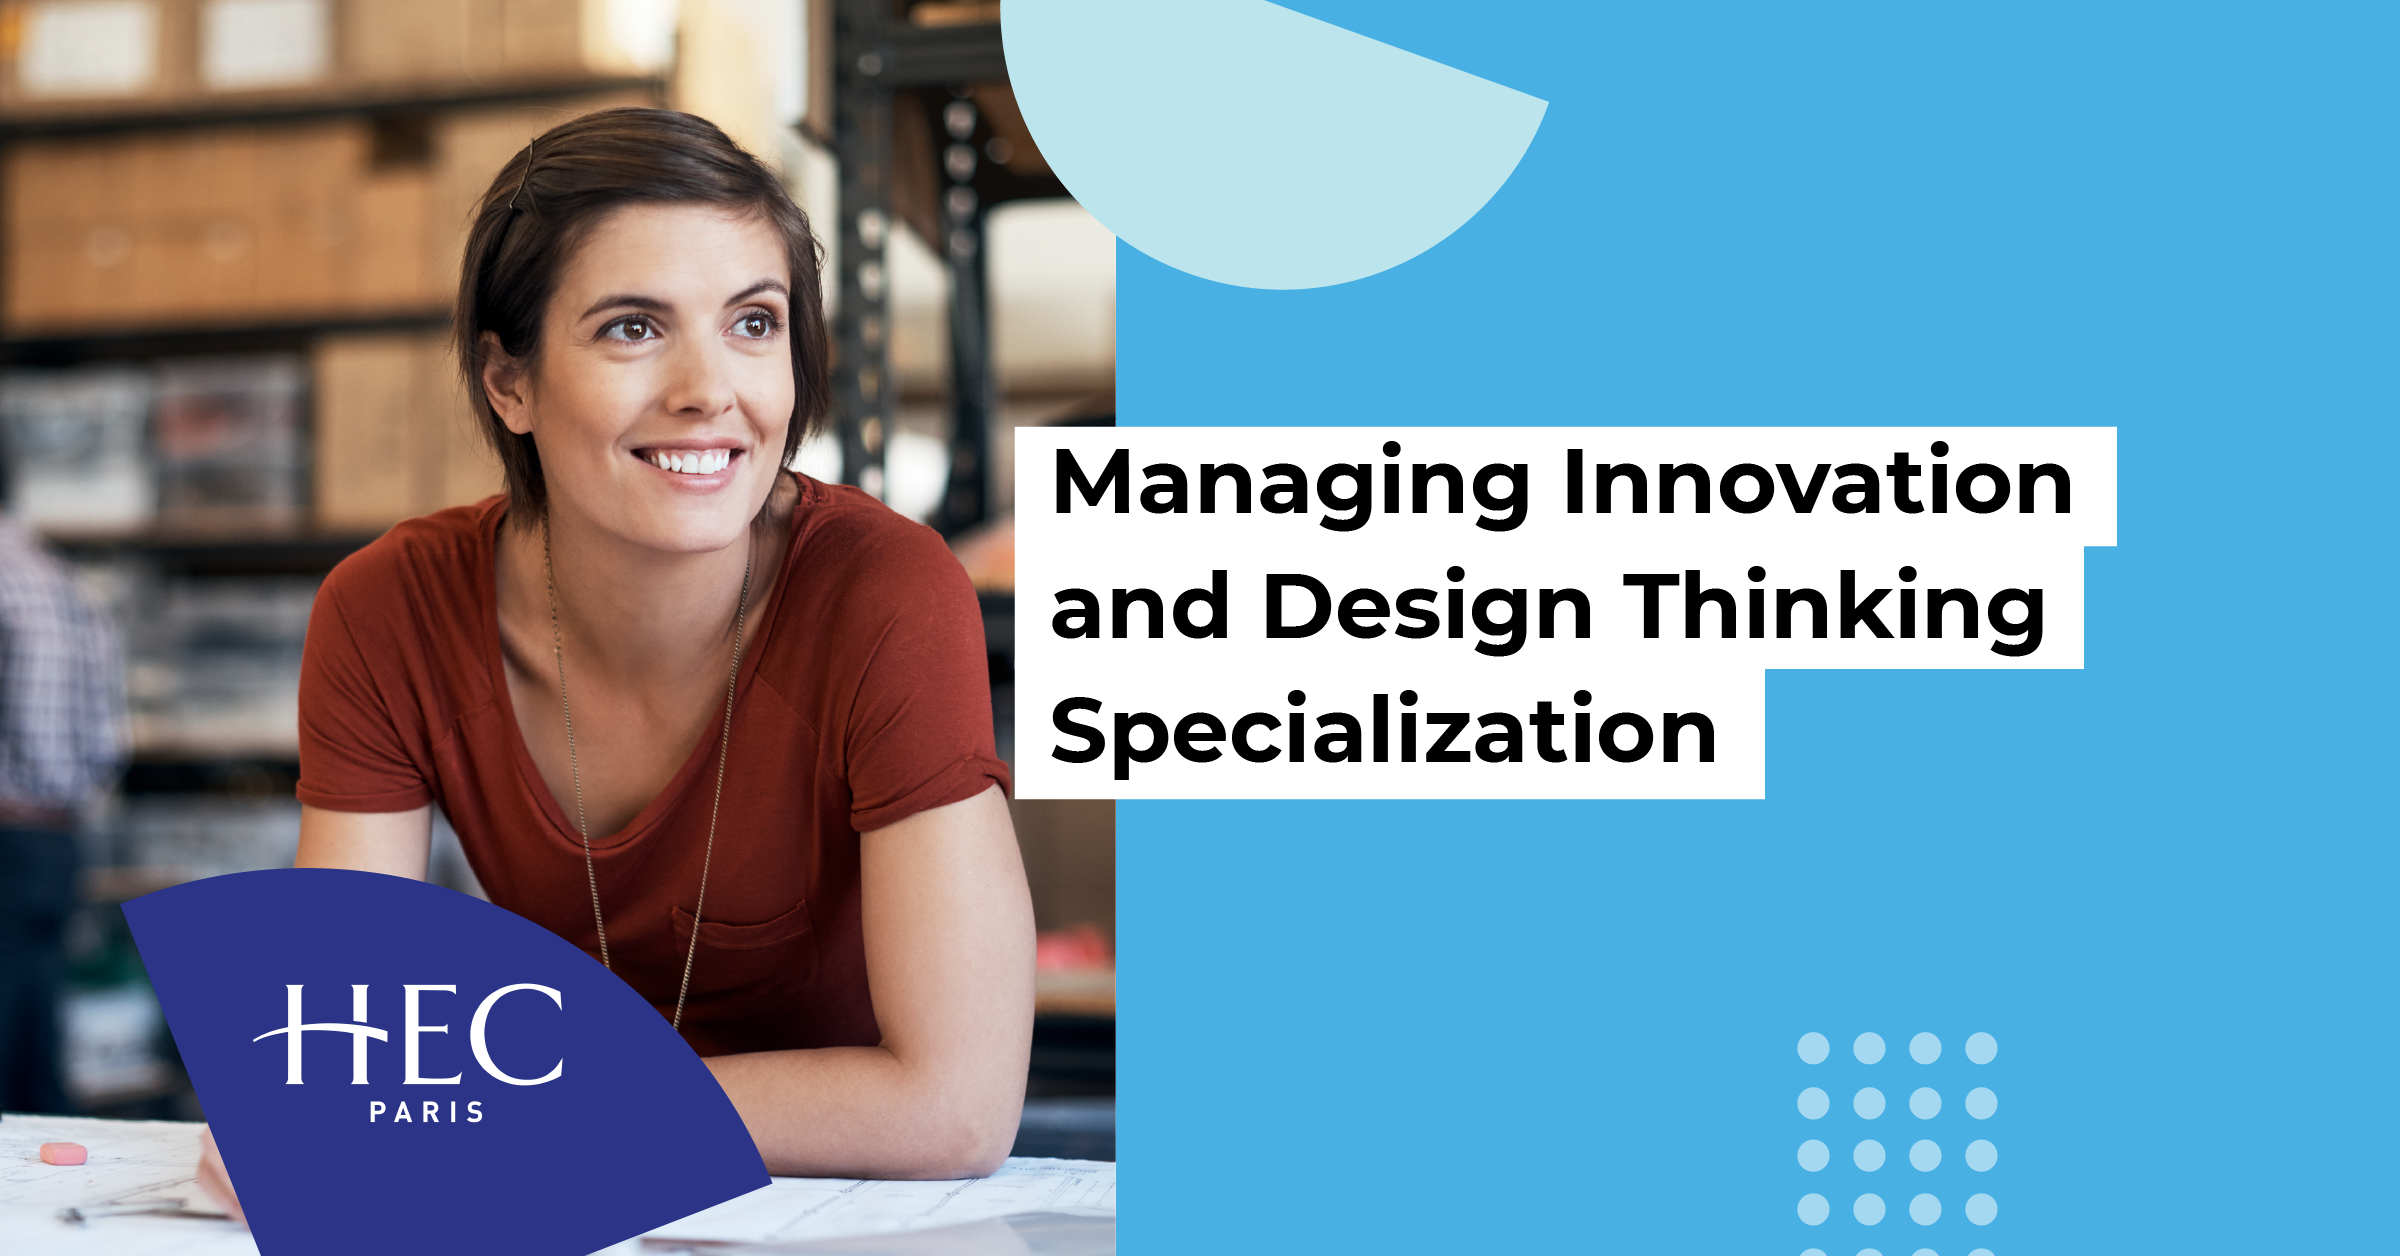 Coursera and HEC Paris Introduce Stackable Degree Model With New Specialization in Design Thinking